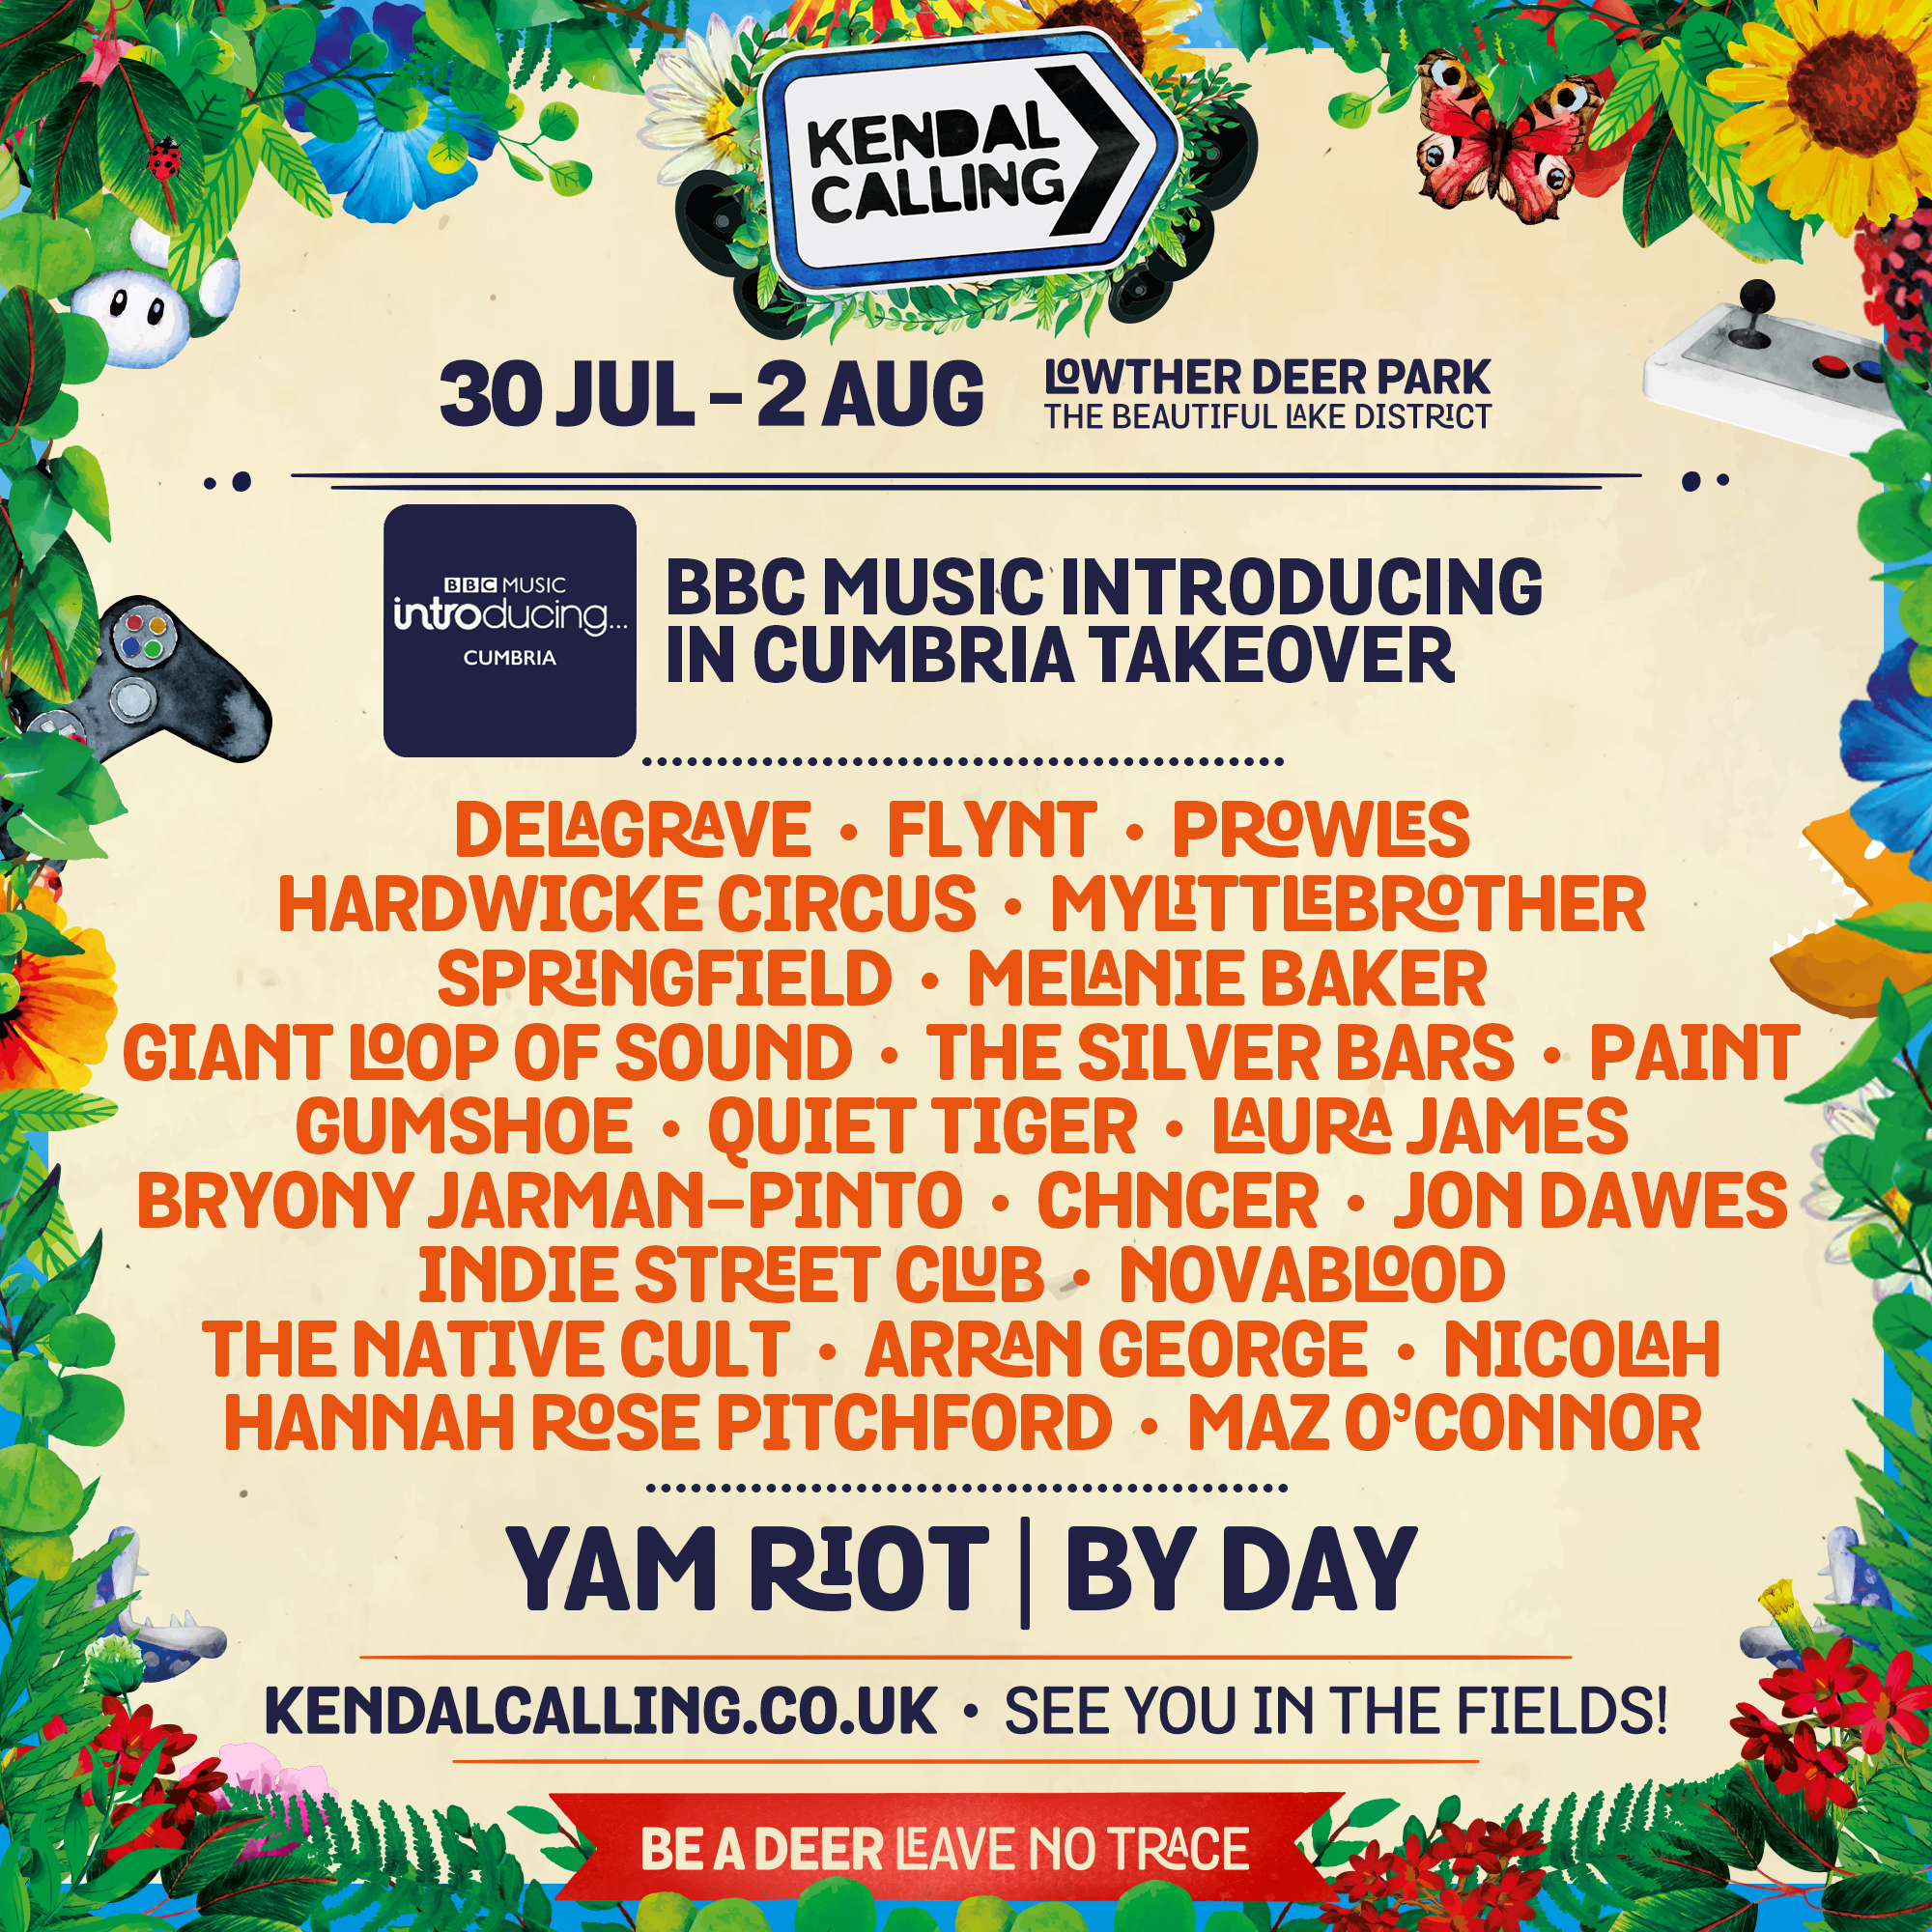 Kendal Calling (Yam Riot stage BBC Music Introducing takeover)